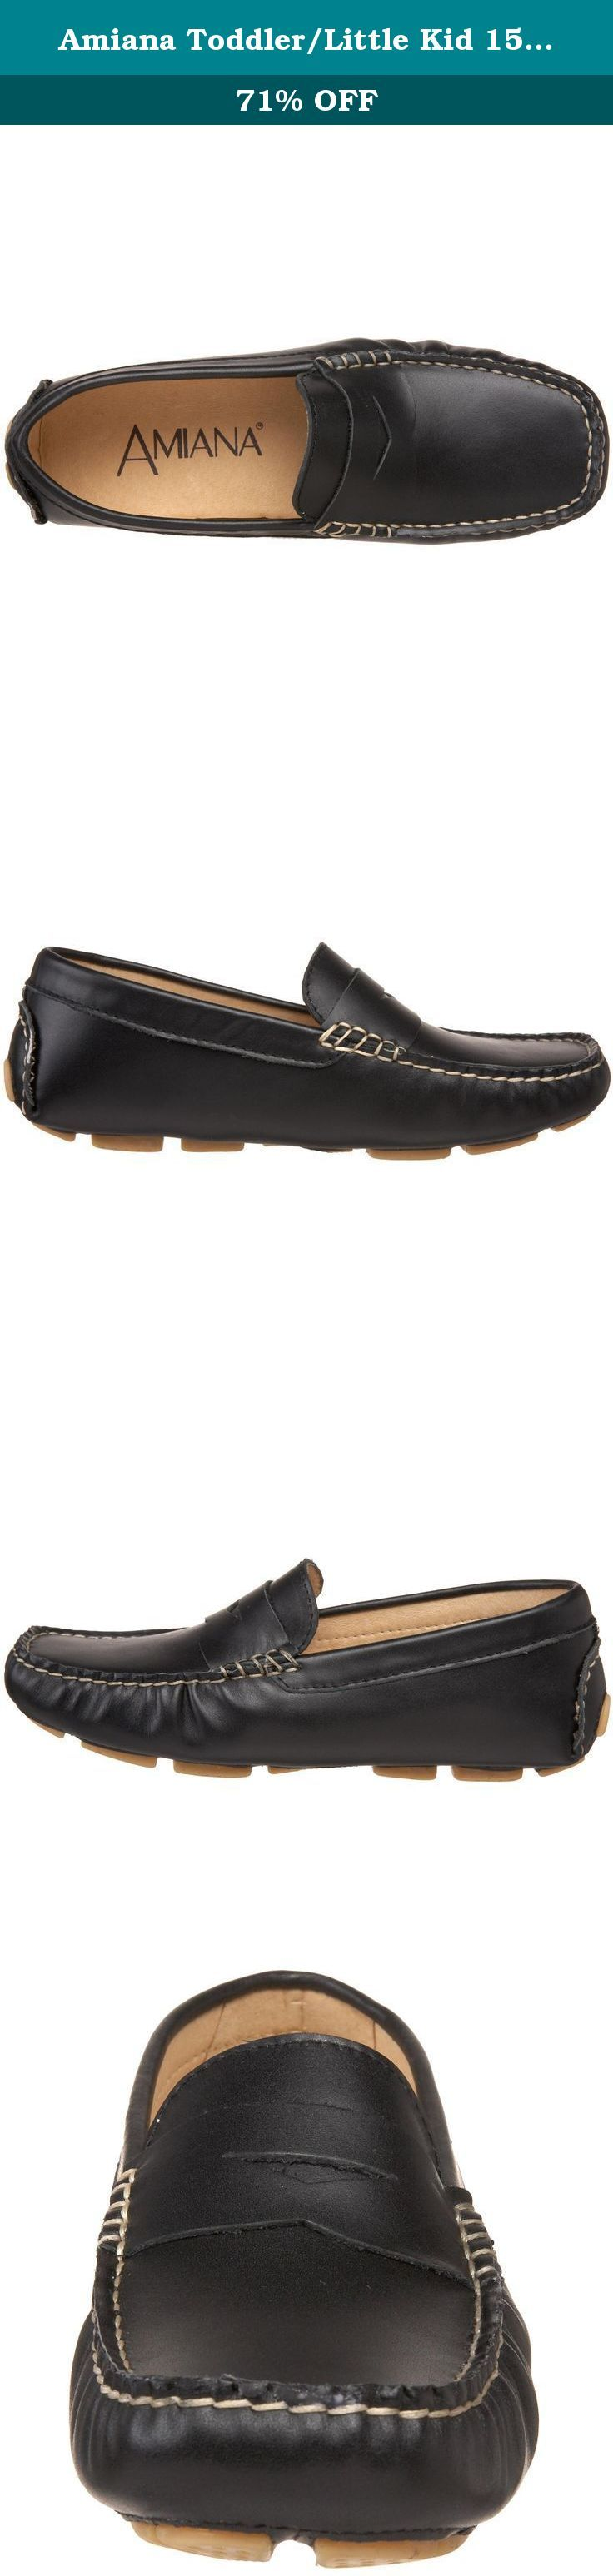 Amiana Toddler/Little Kid 15/A0412 Moccasin,Black,30 EU(US Little Kid 12-12.5 M).